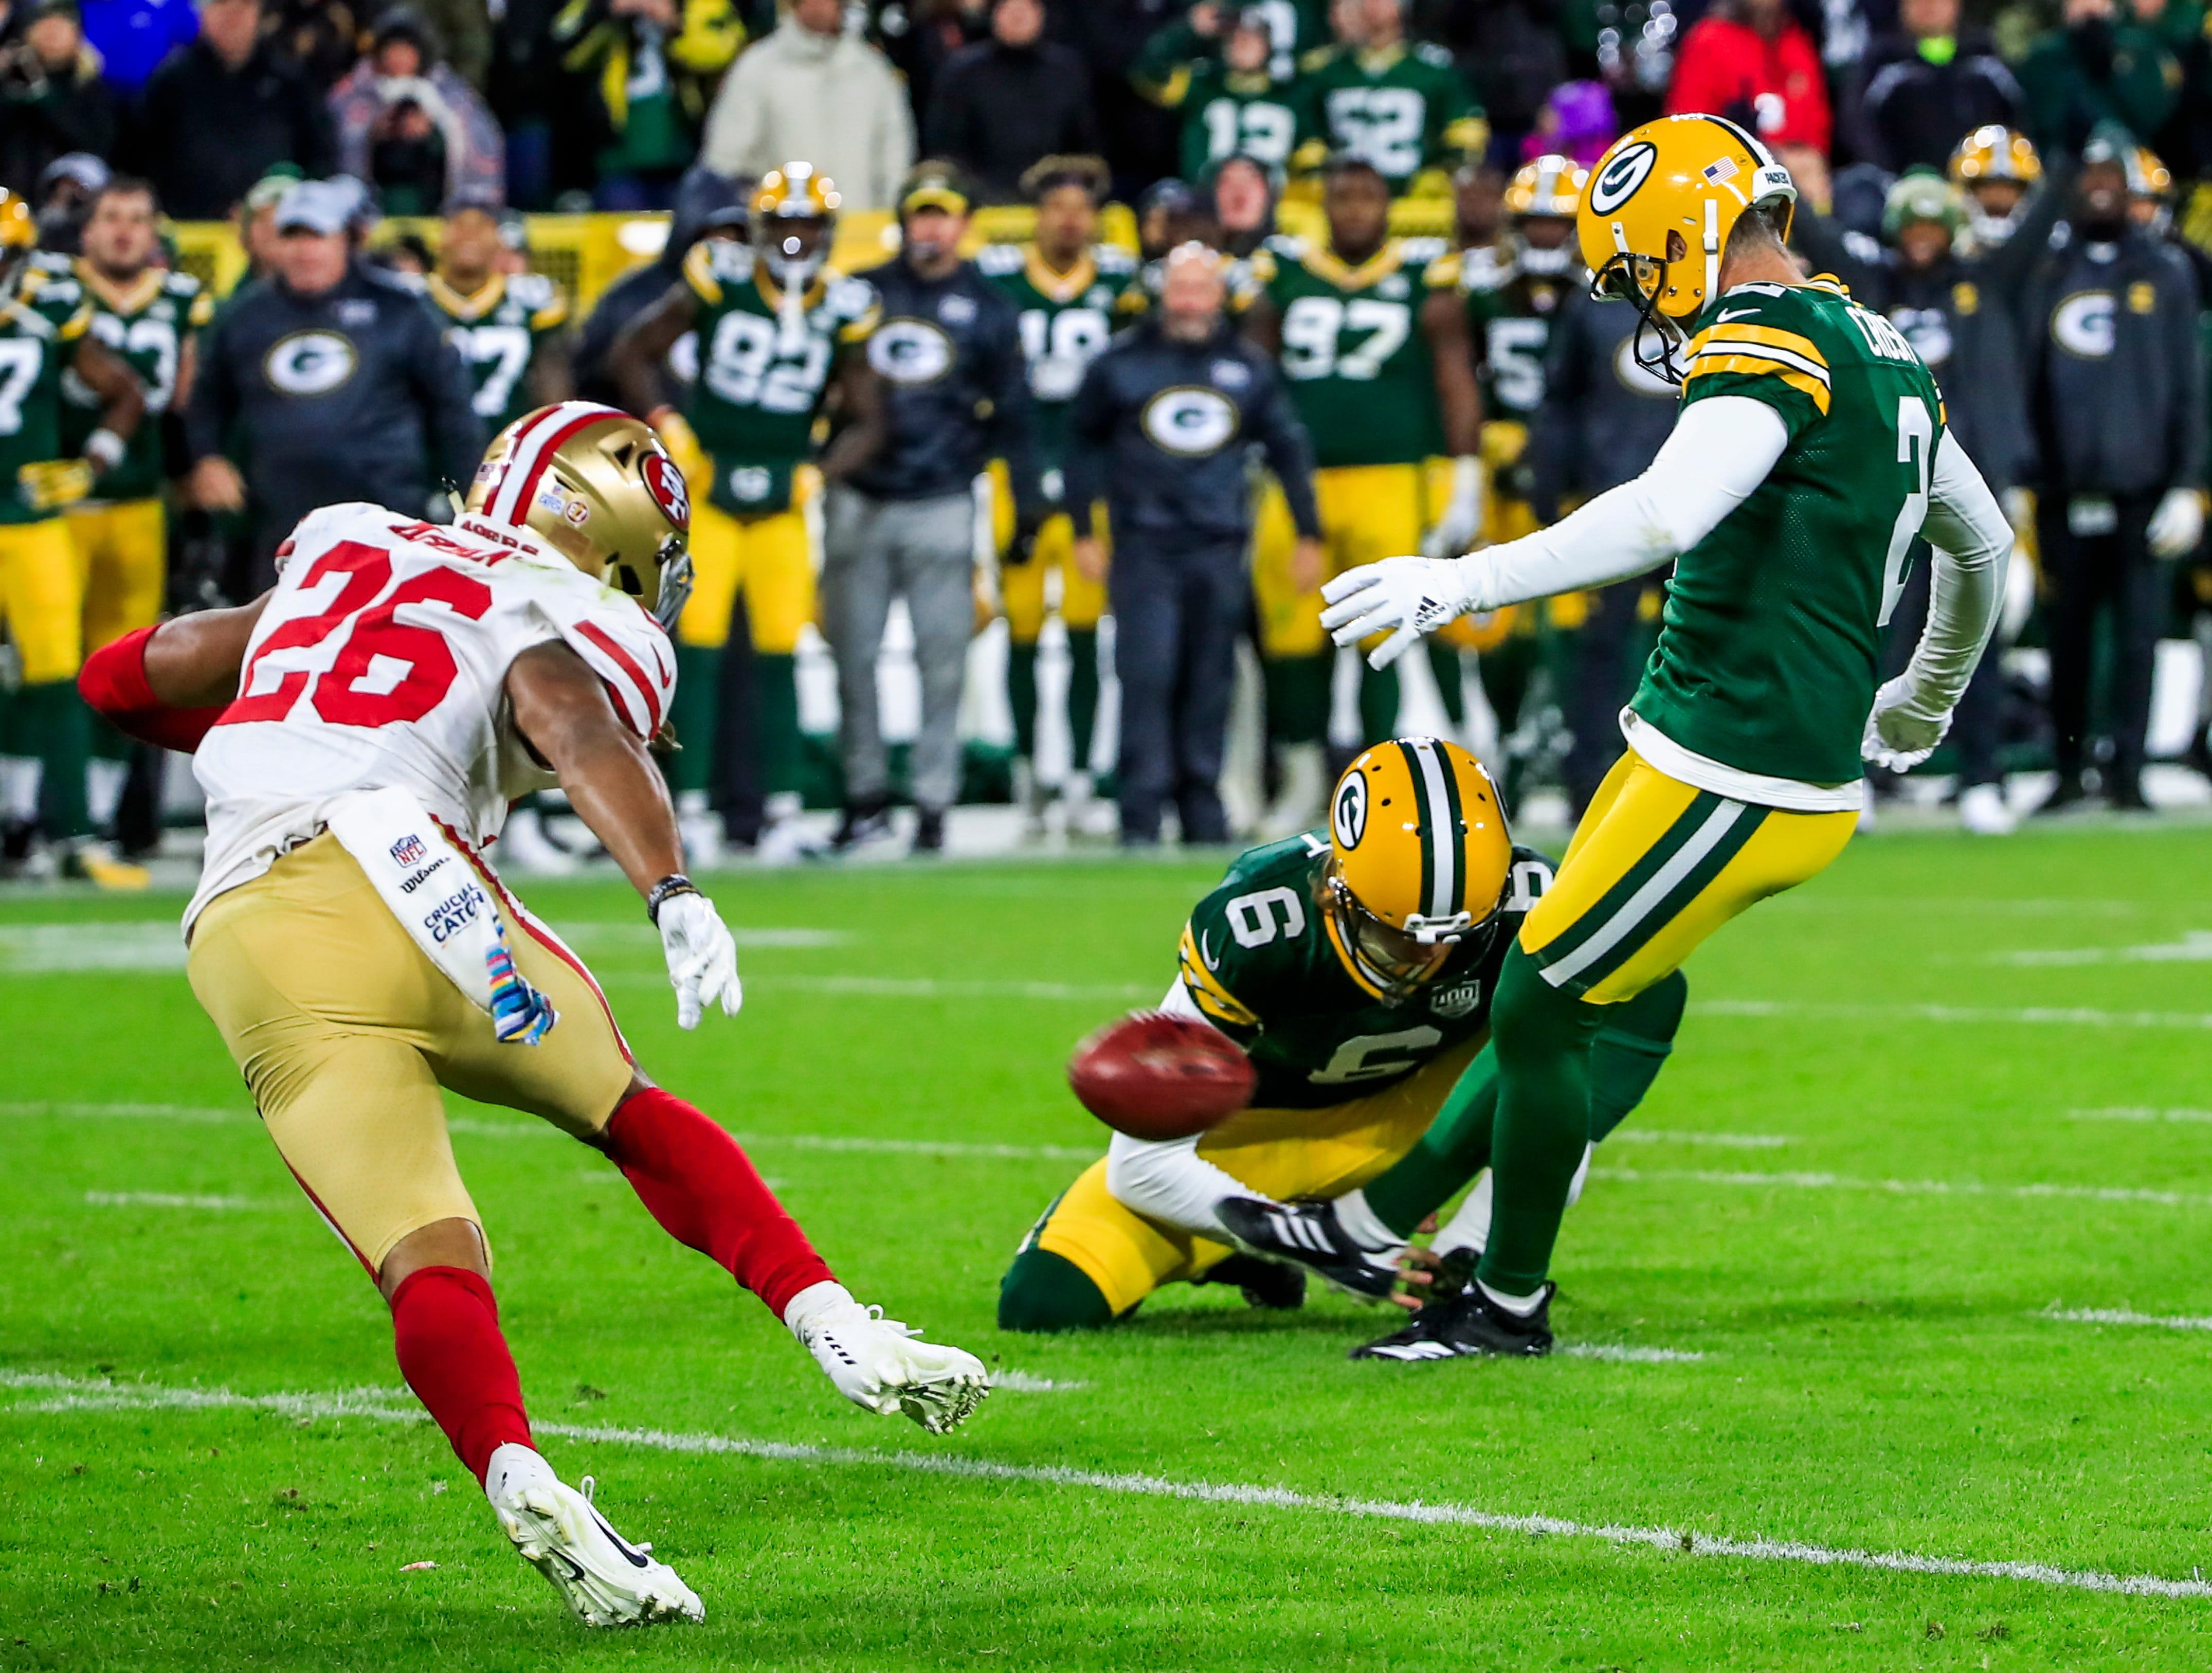 Green Bay Packers kicker Mason Crosby kicks the game-winning field goal at Lambeau Field, leading the Packers to a 33-30 win over the San Francisco 49ers Oct. 15, 2018.